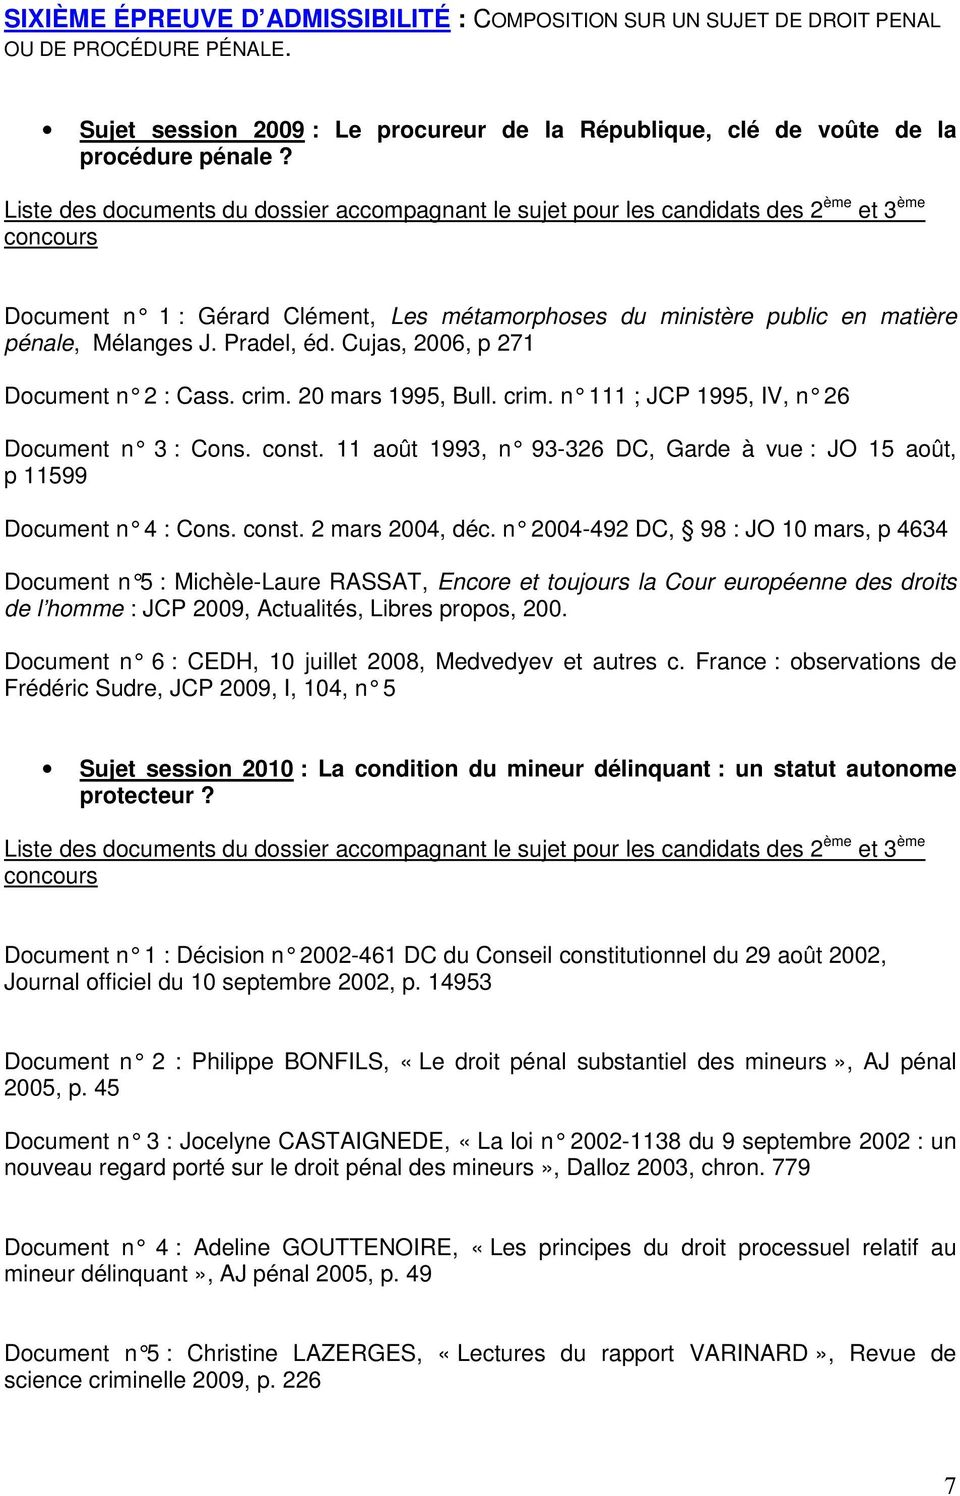 Pradel, éd. Cujas, 2006, p 271 Document n 2 : Cass. crim. 20 mars 1995, Bull. cri m. n 111 ; JCP 1995, IV, n 26 Document n 3 : Cons. const.